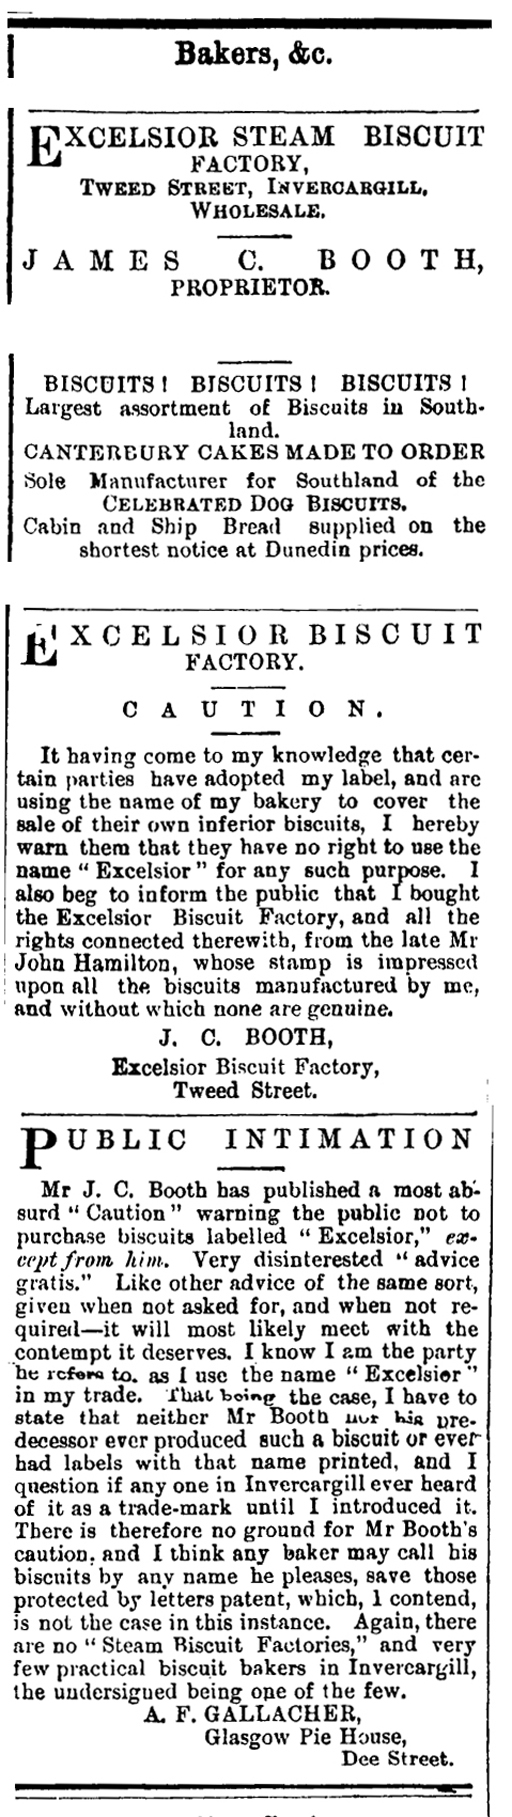 NOTICE OF PUBLIC INTIMATION J C BOOTH vs A F Gallacher  - Southland Times - 8 September 1880 - Page 1 - Page 1 Advertisements Column 4